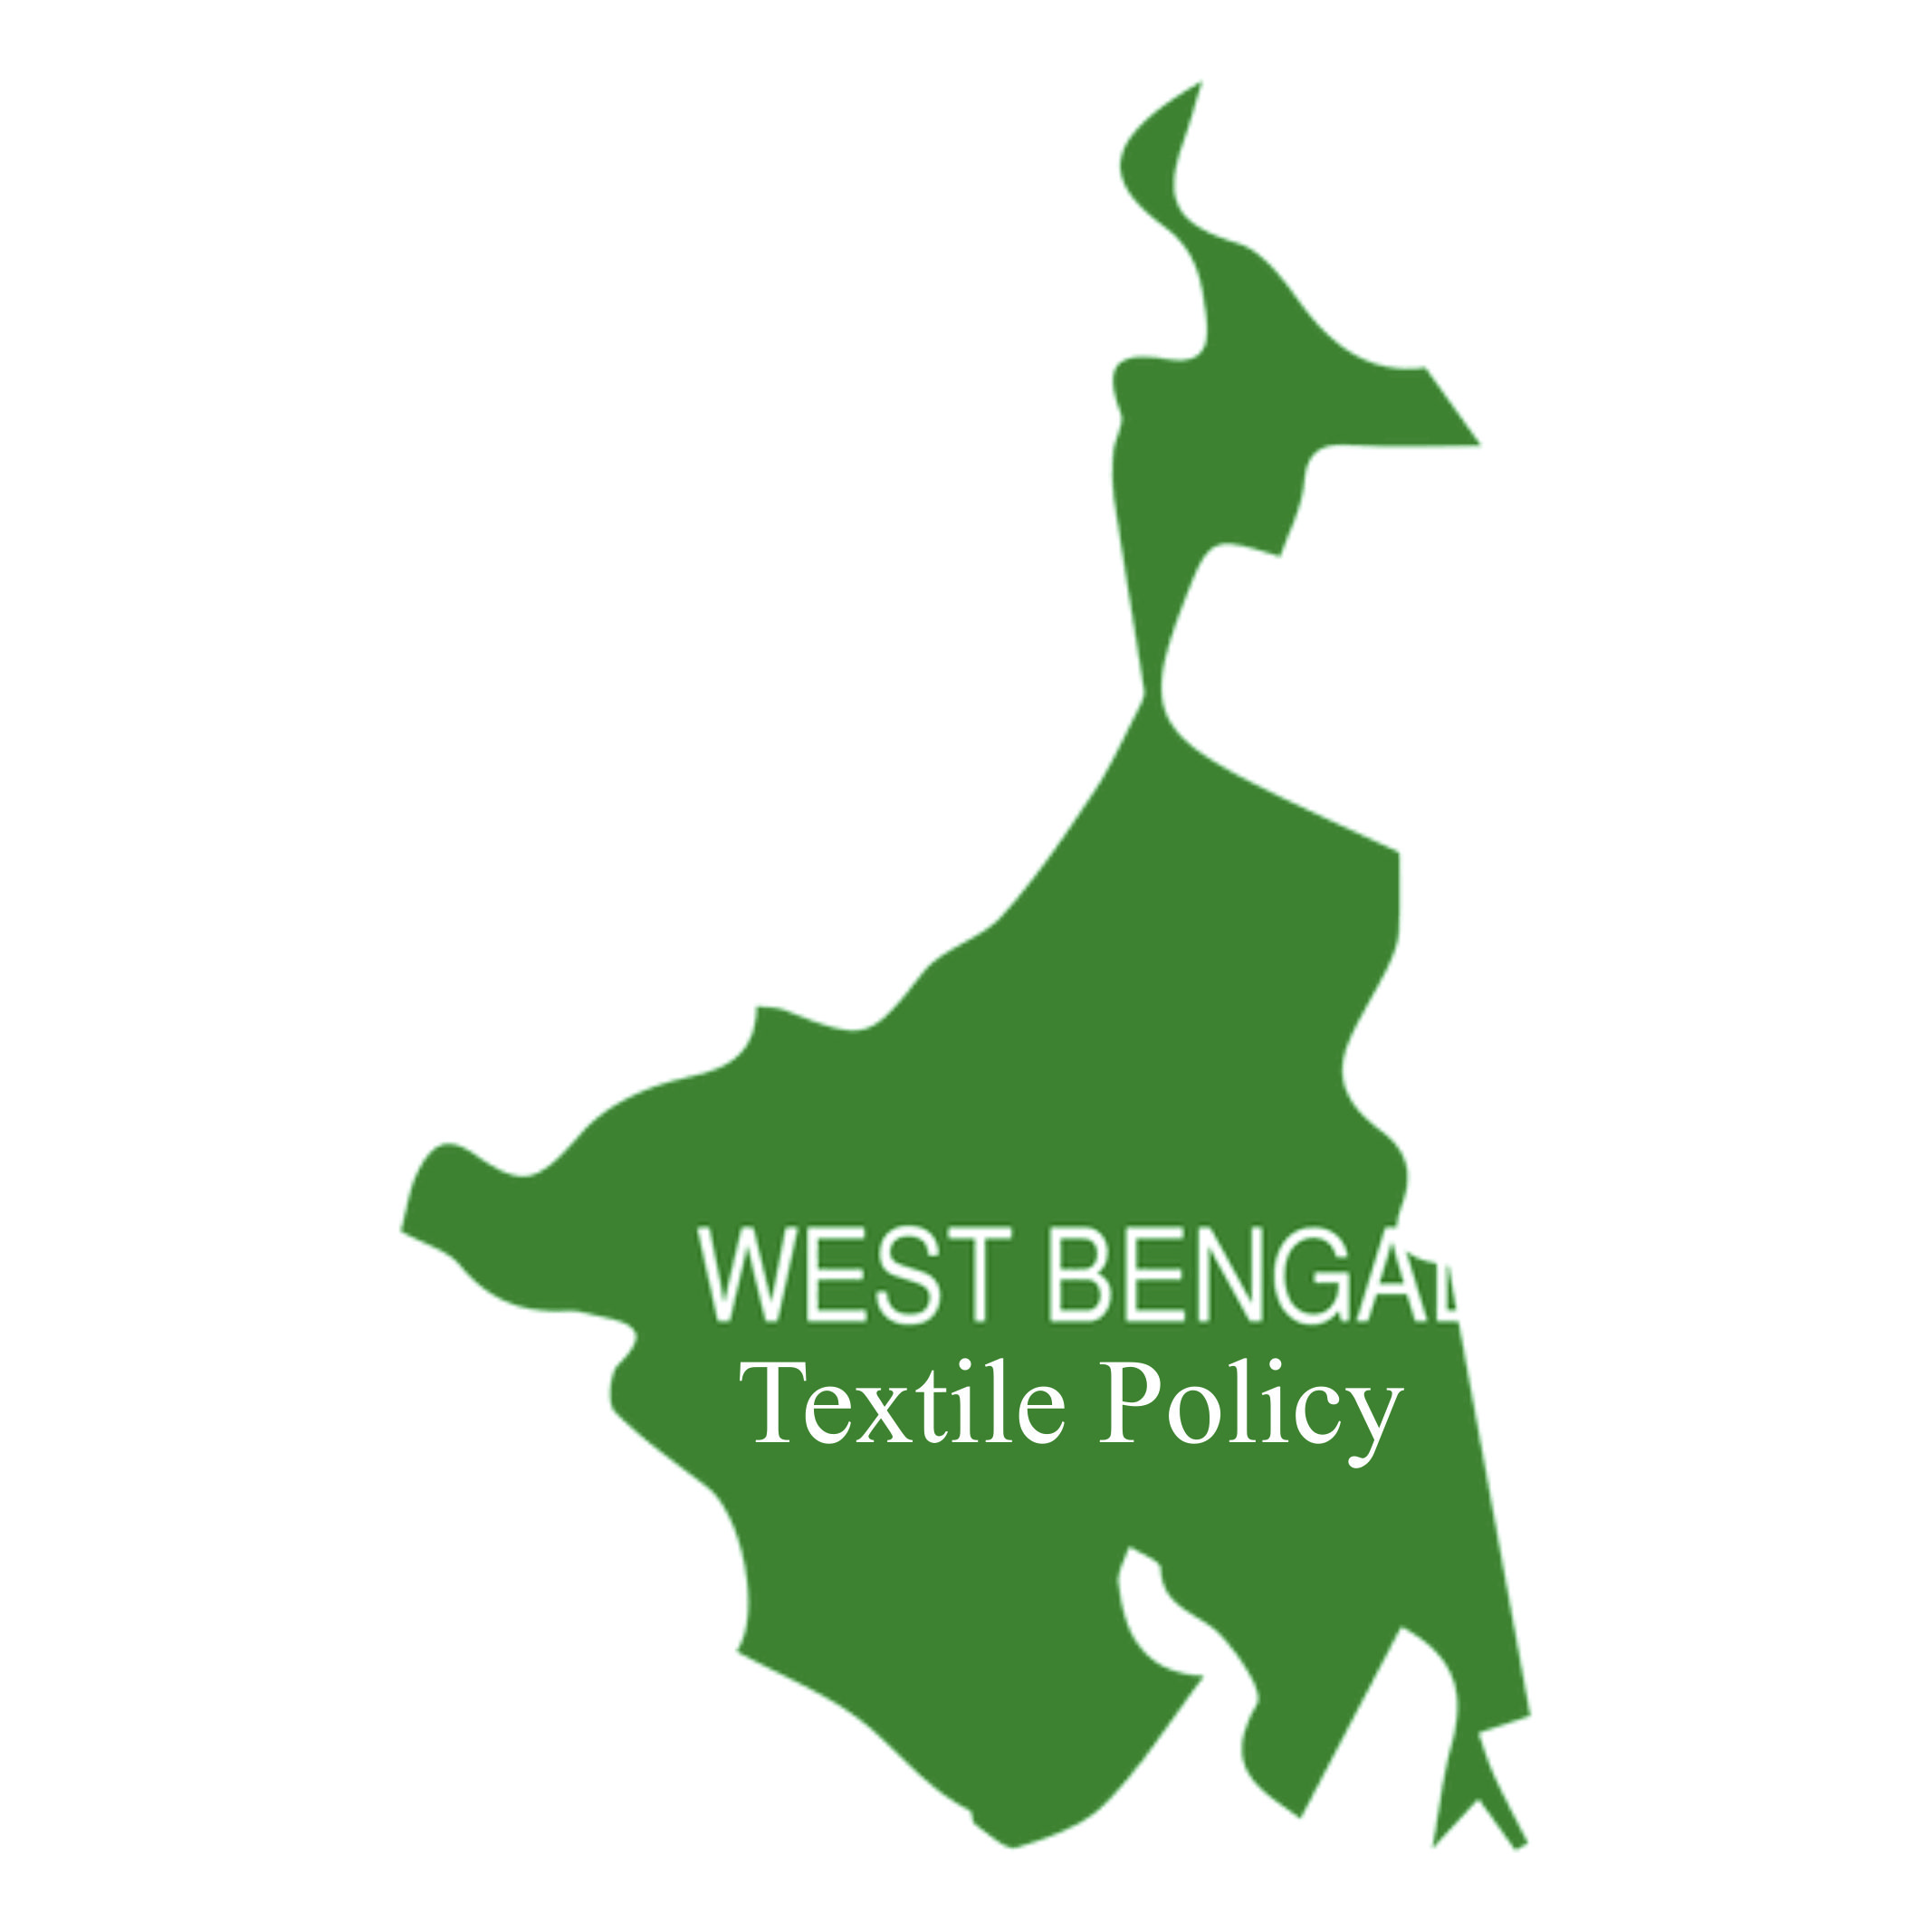 West Bengal Textile Policy